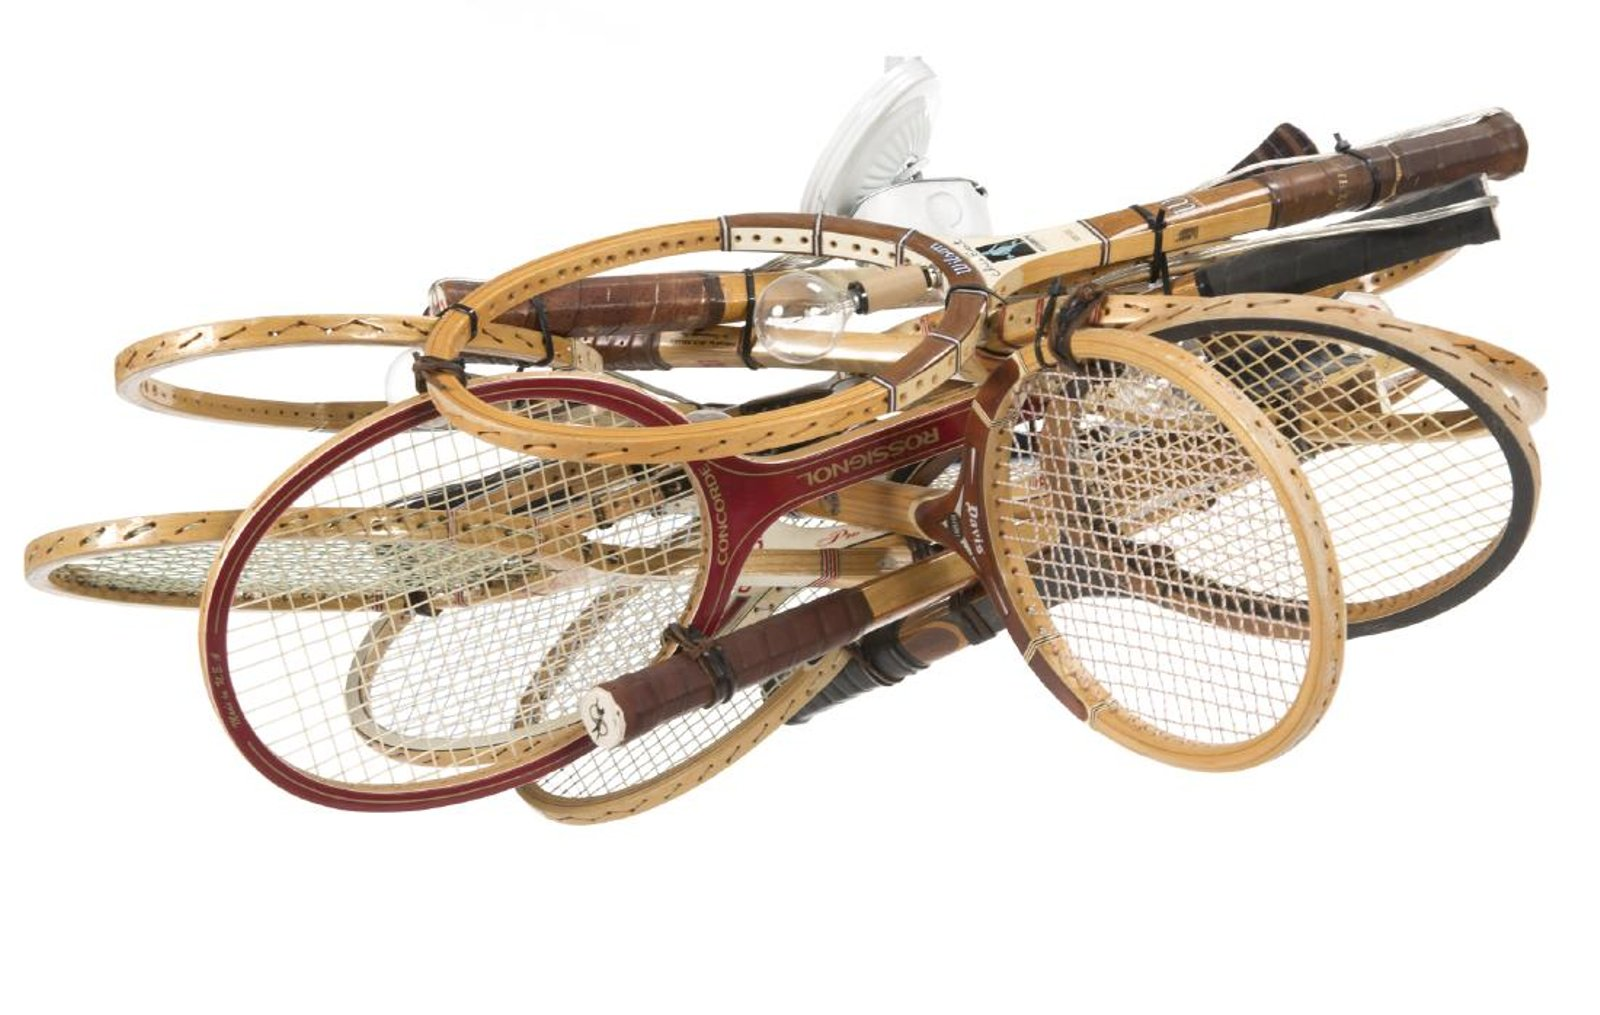 hilfiger_tennis_racket_chandelier.jpg